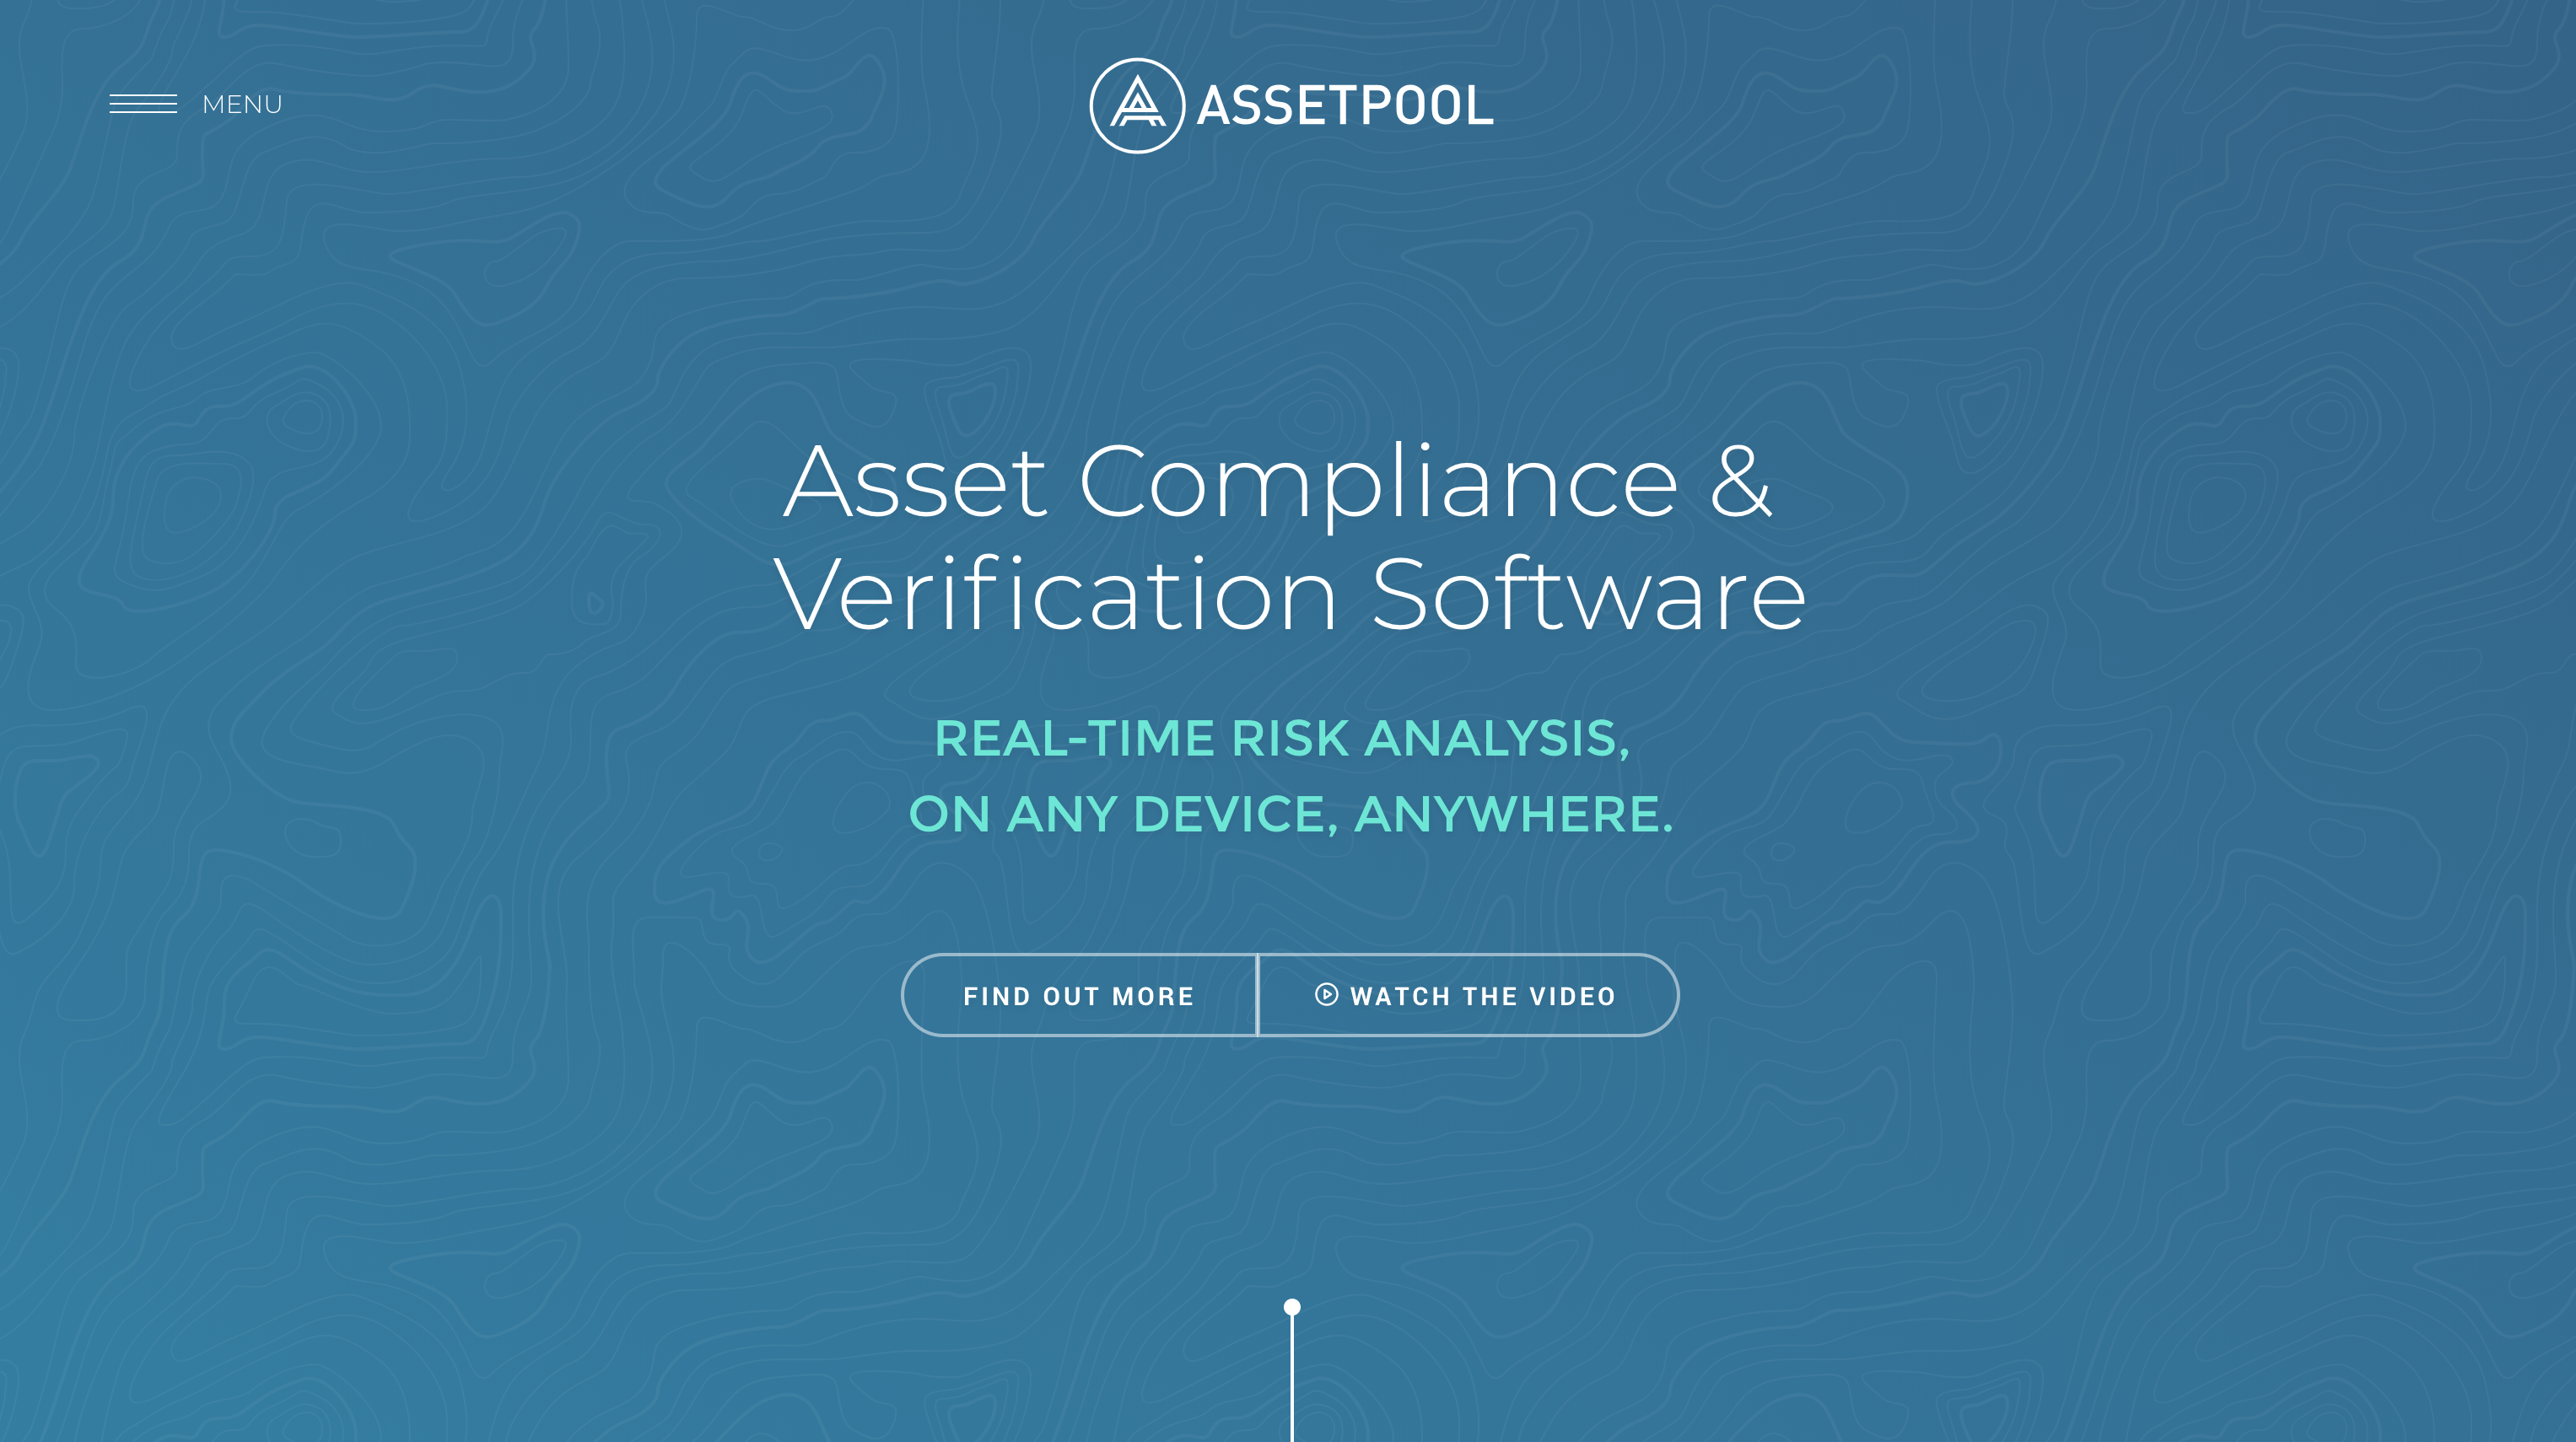 AssetPool.co Company Overview Page